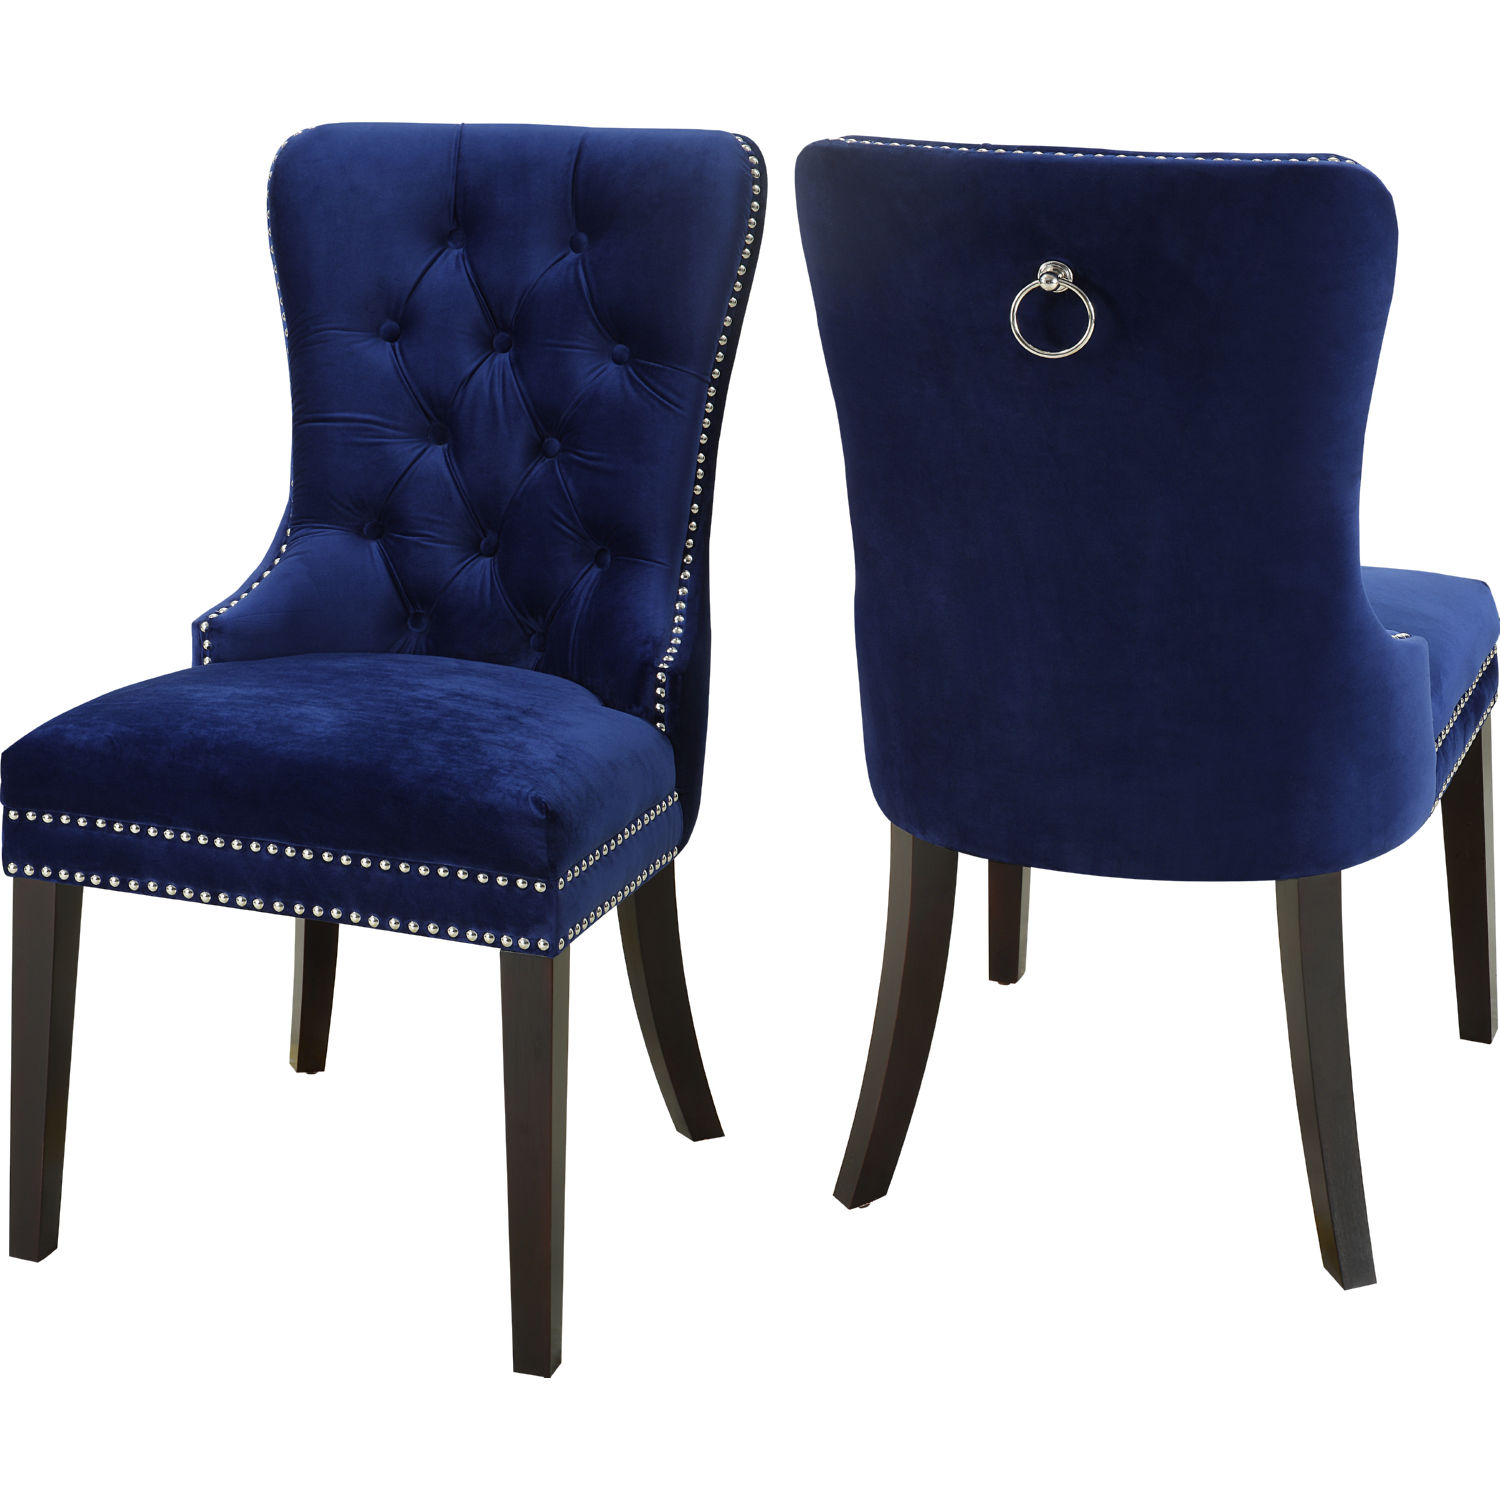 navy blue dining chair best budget computer meridian furniture 740navy c nikki in tufted